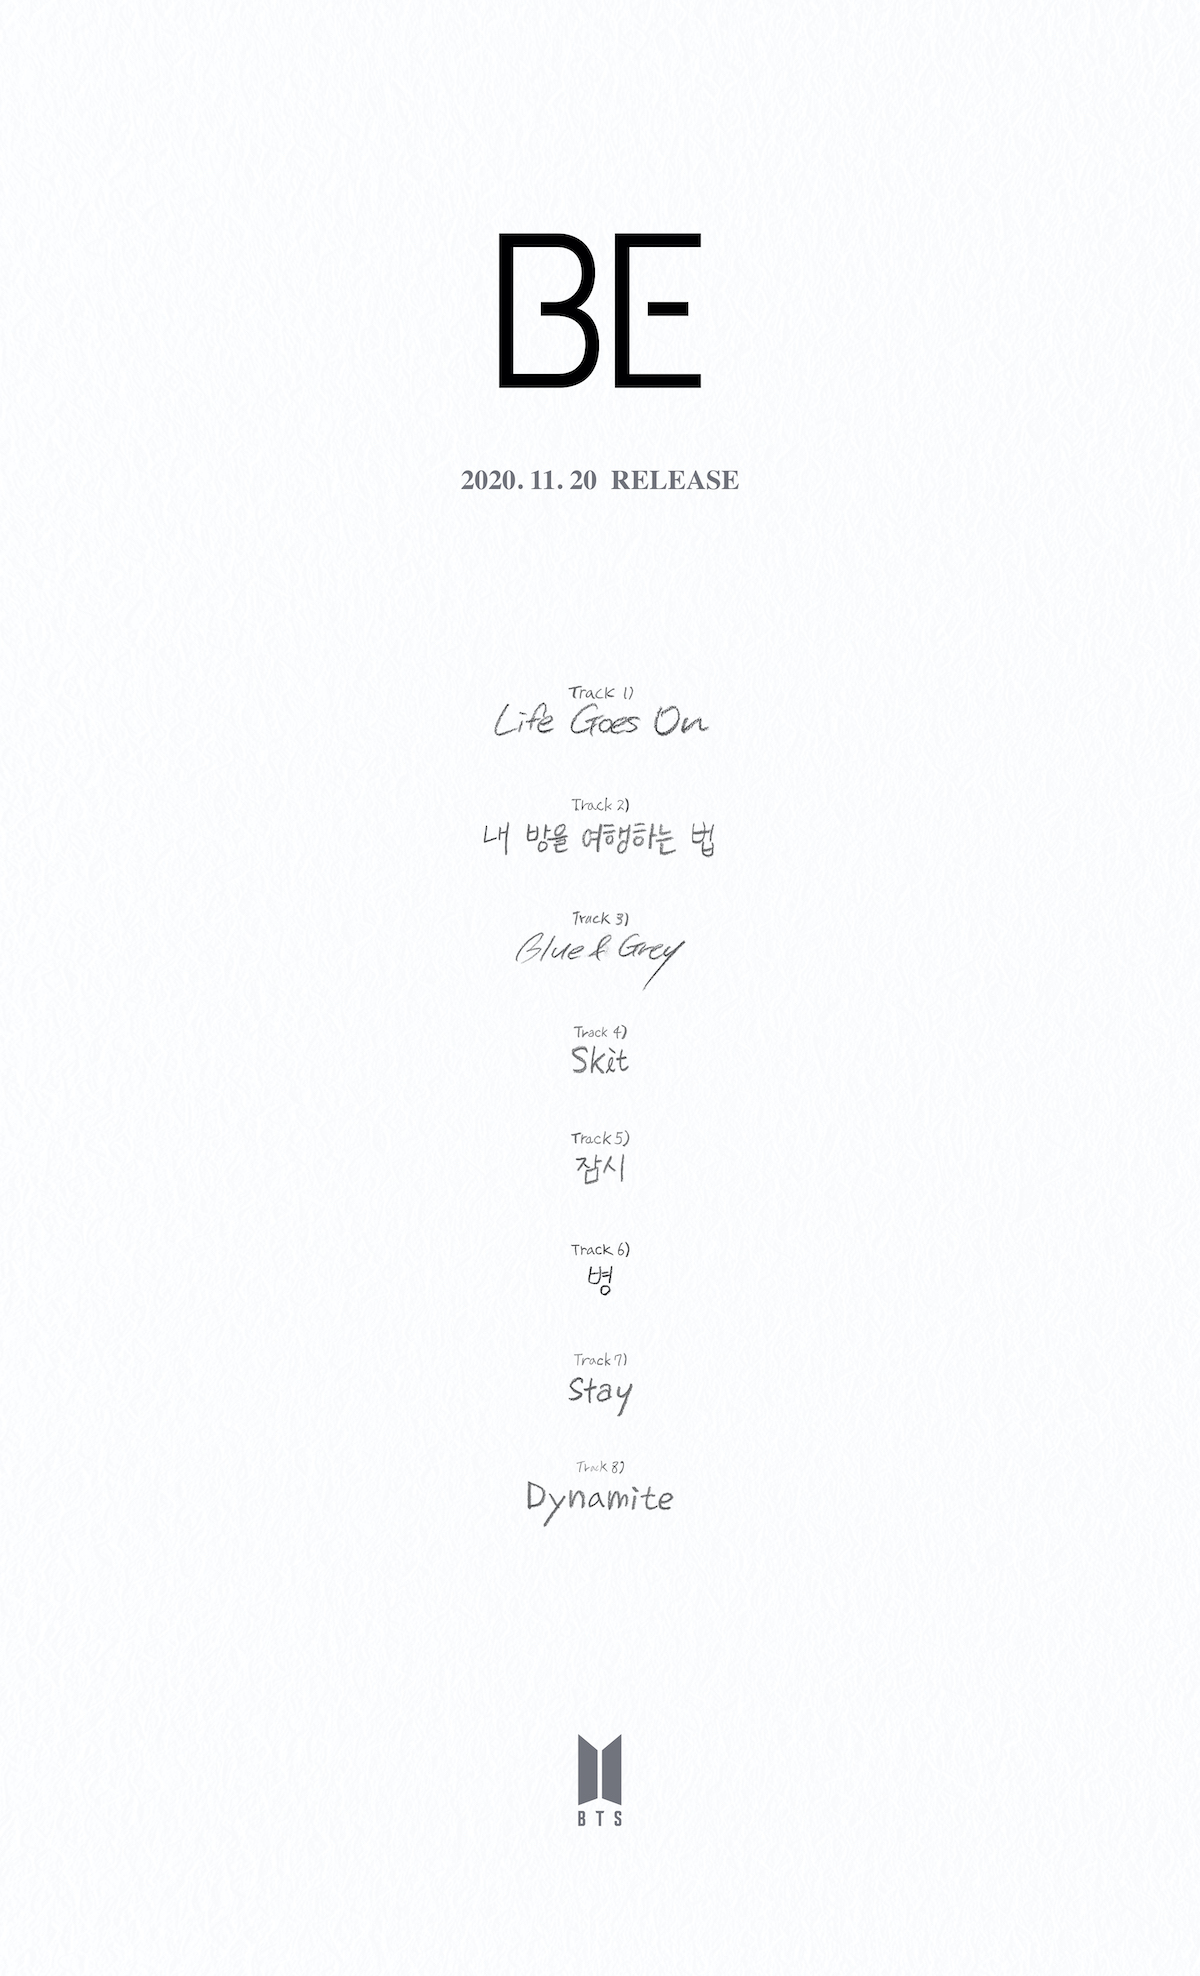 bts be album TRACKLIST BTS Reveal Tracklist for New Album BE (Deluxe Edition)